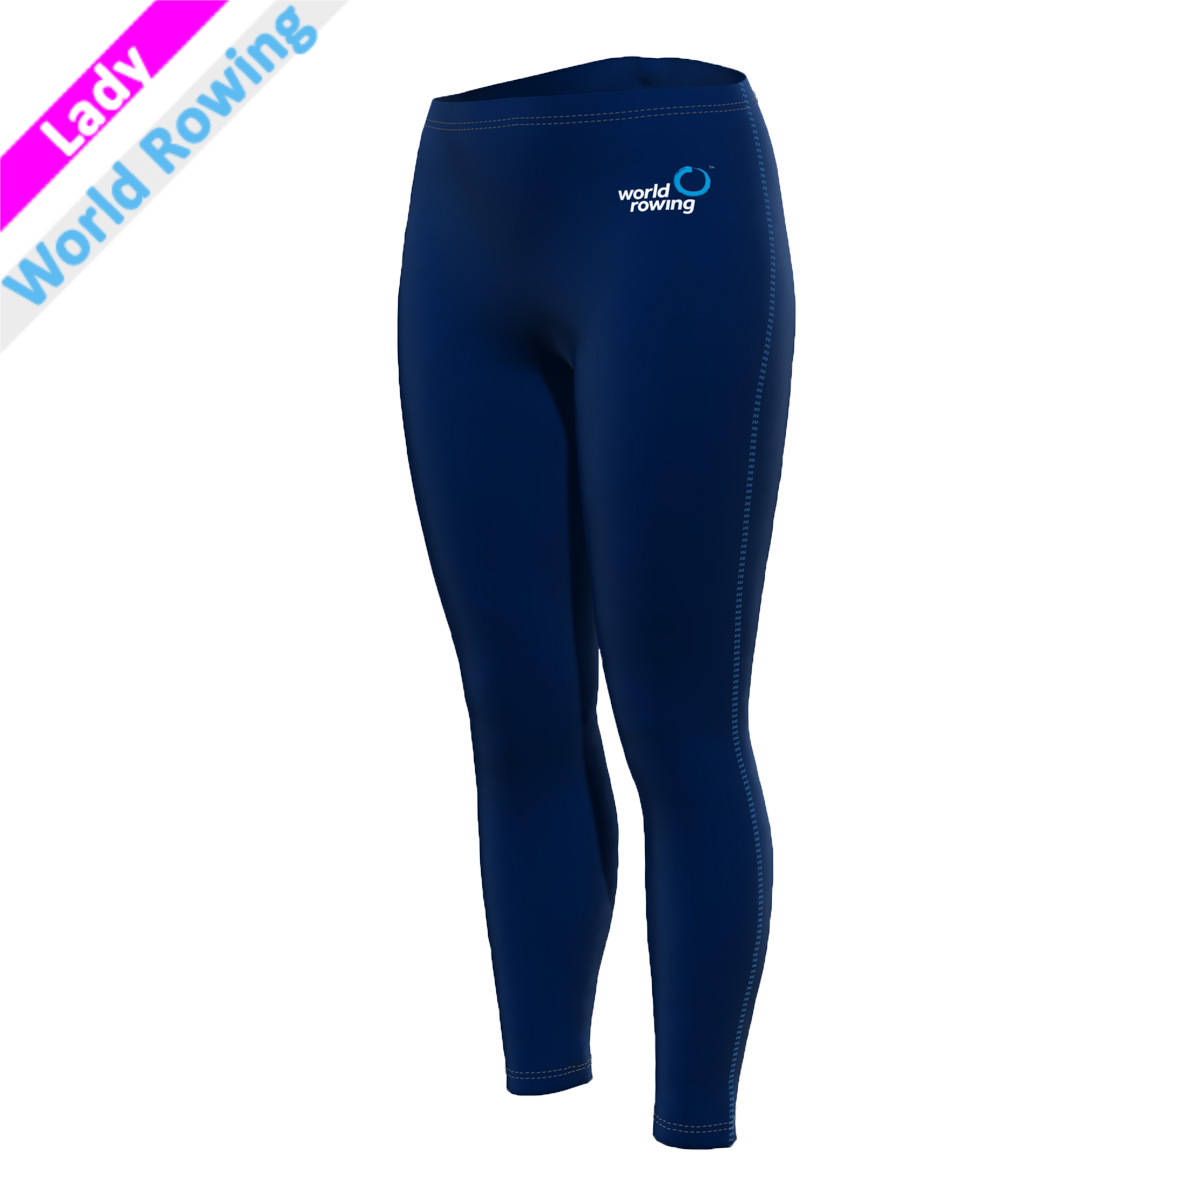 World Rowing Tights - marine blau F